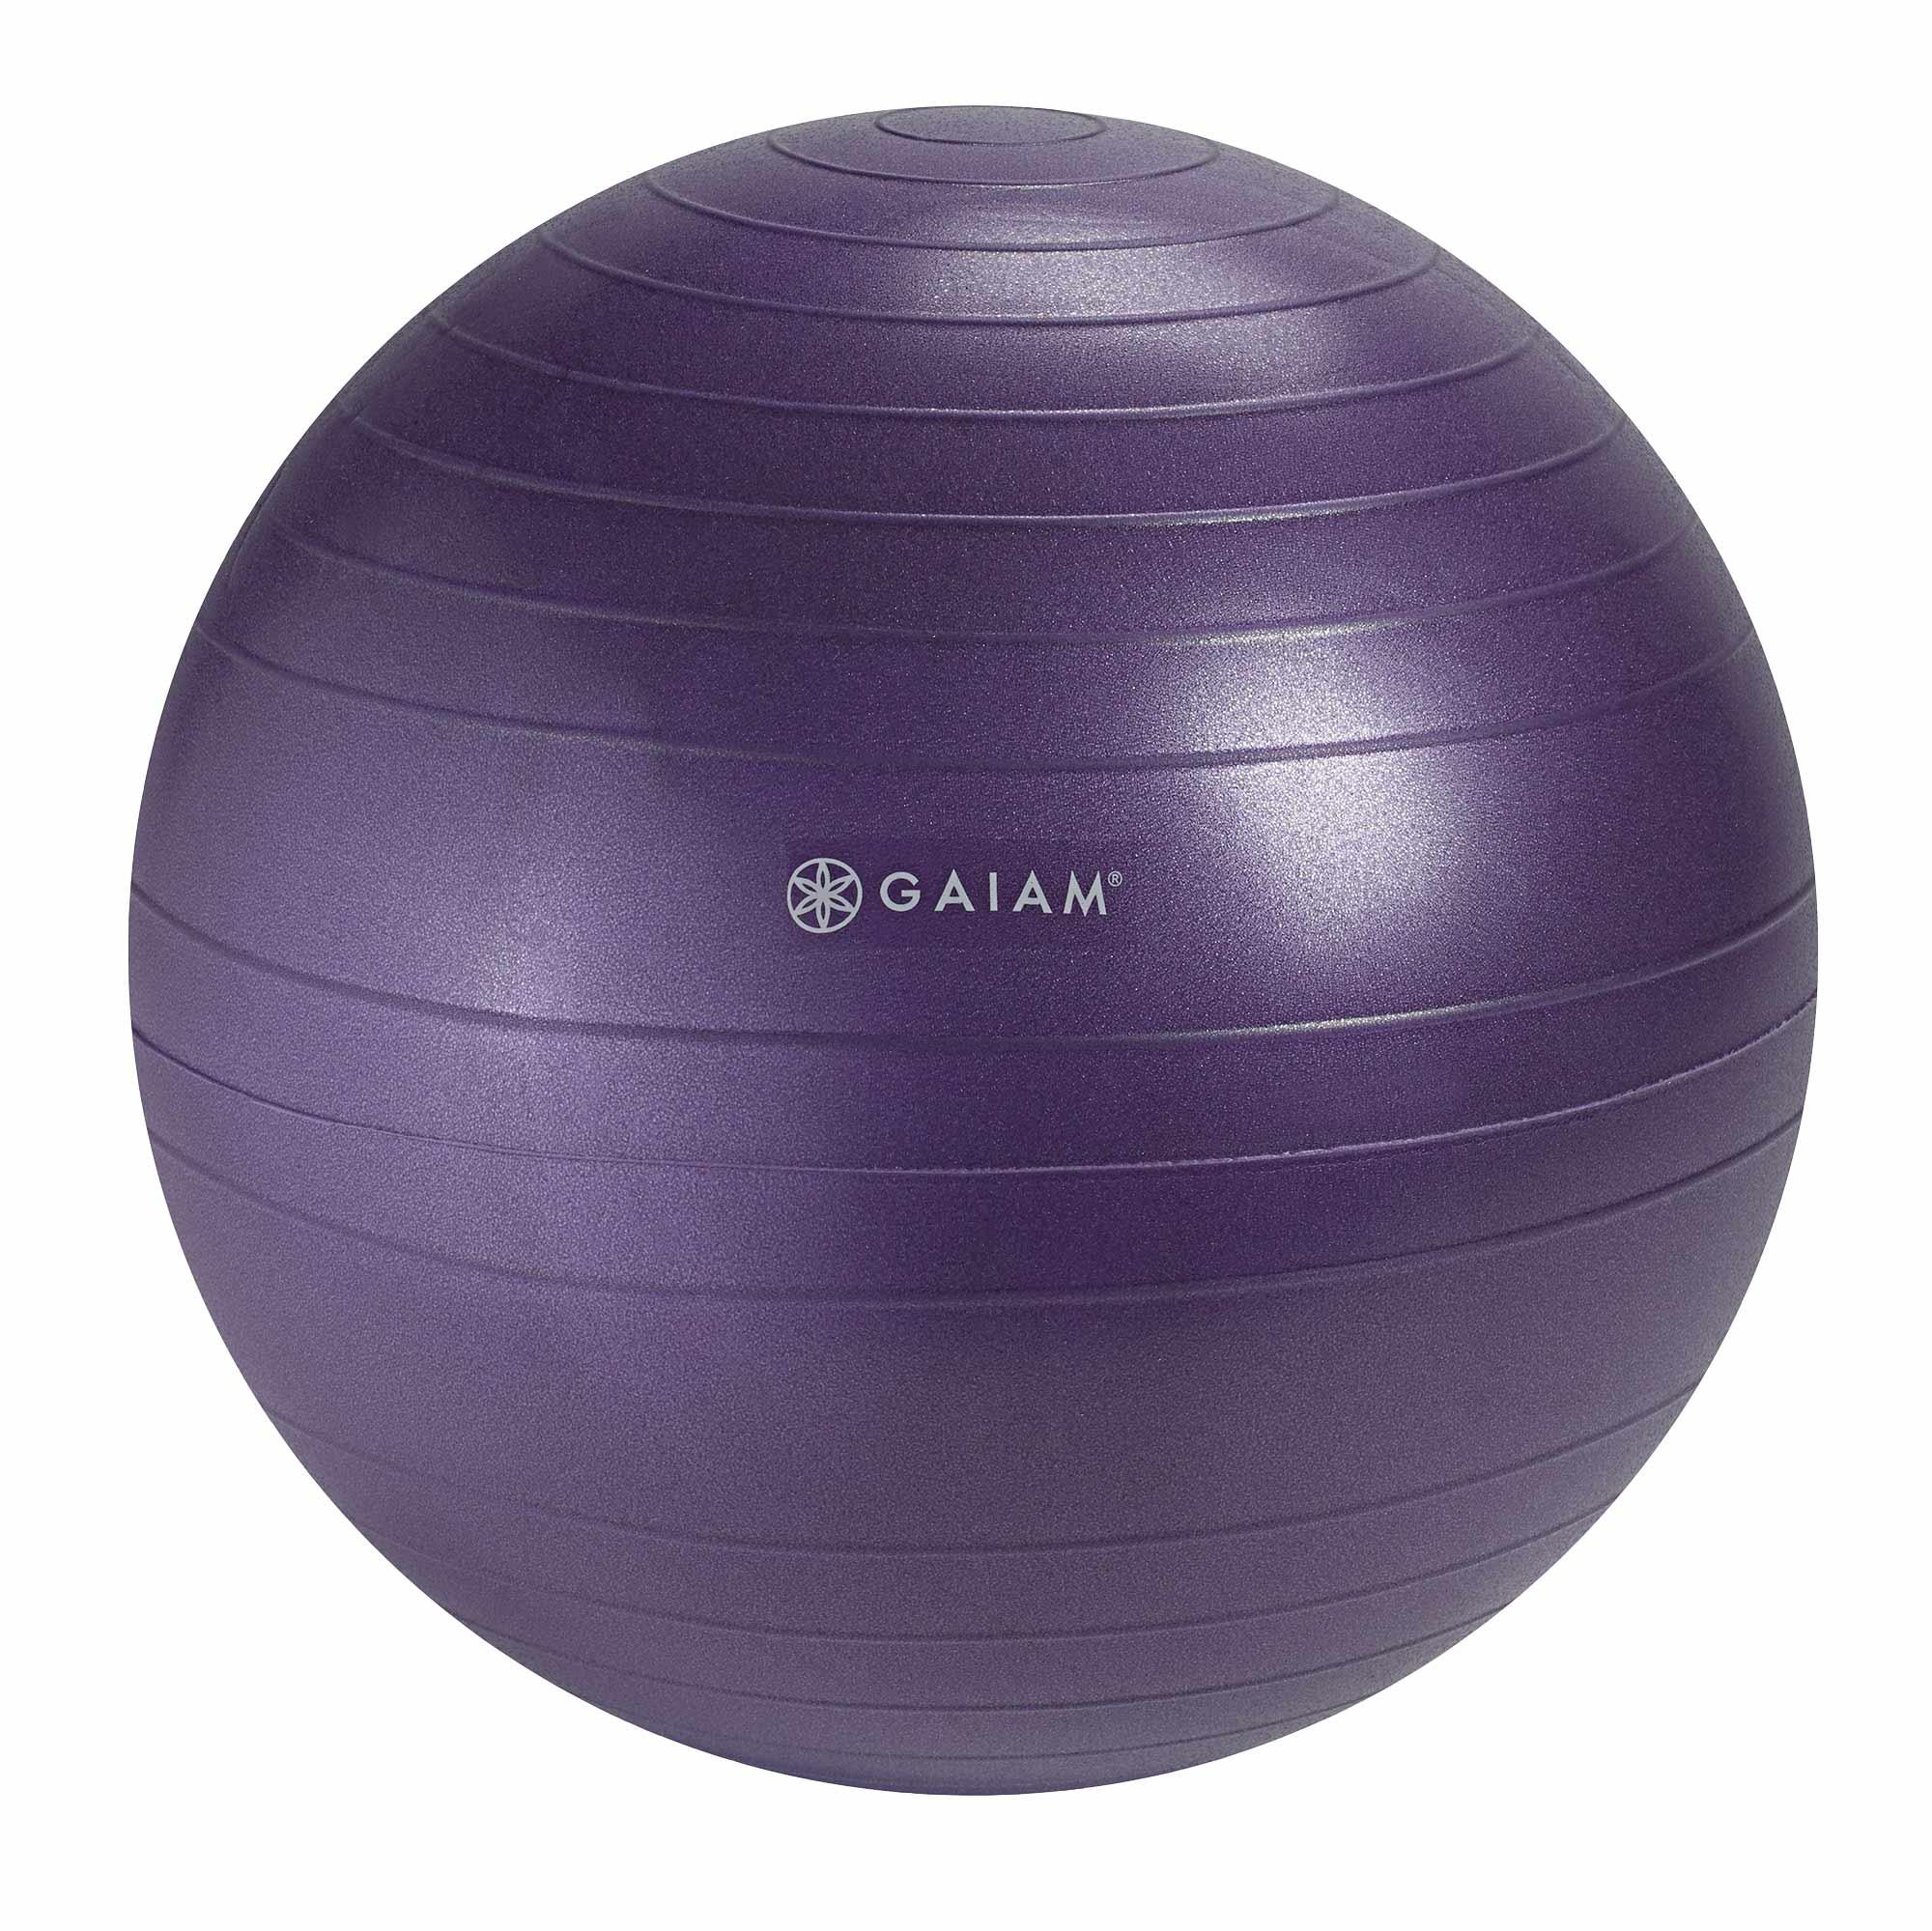 gaiam balance ball chair replacement ball blue 52cm sports outdoors. Black Bedroom Furniture Sets. Home Design Ideas